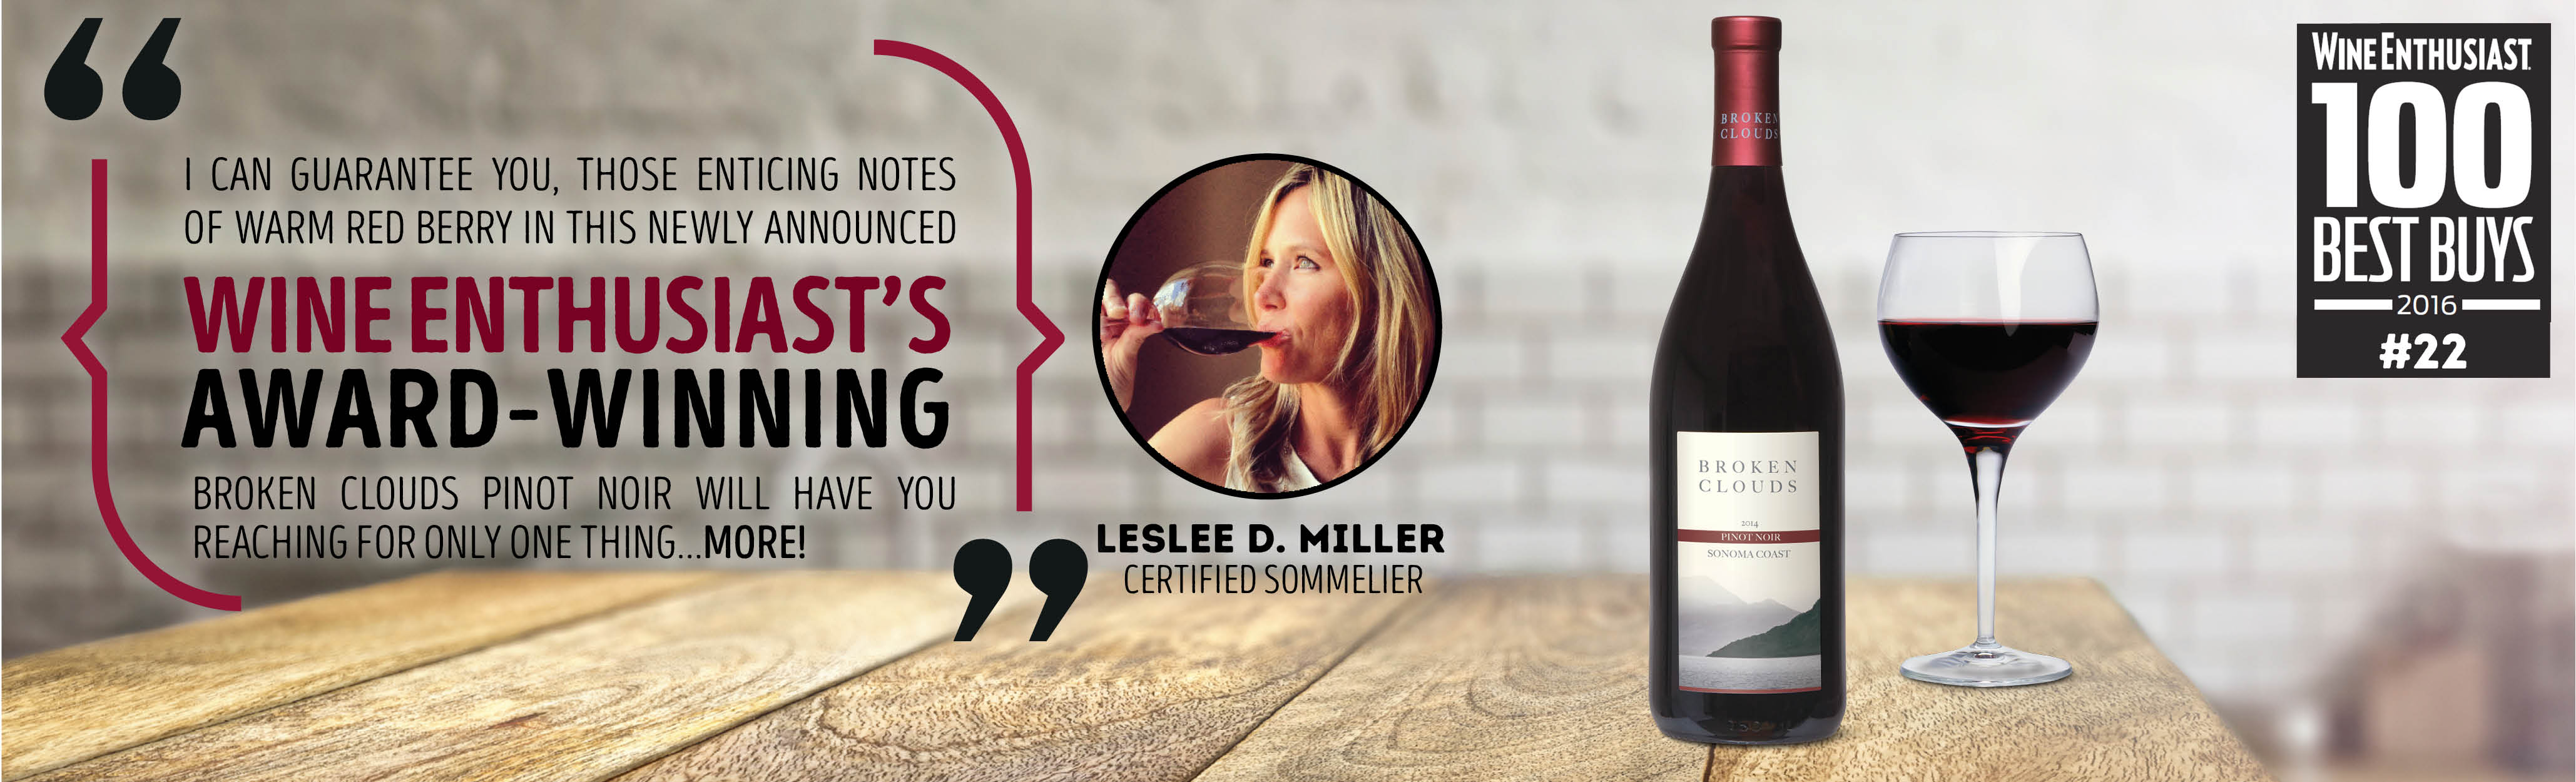 Sommelier Leslee Miller and Broken Cloud Pinot Noir recommendation.